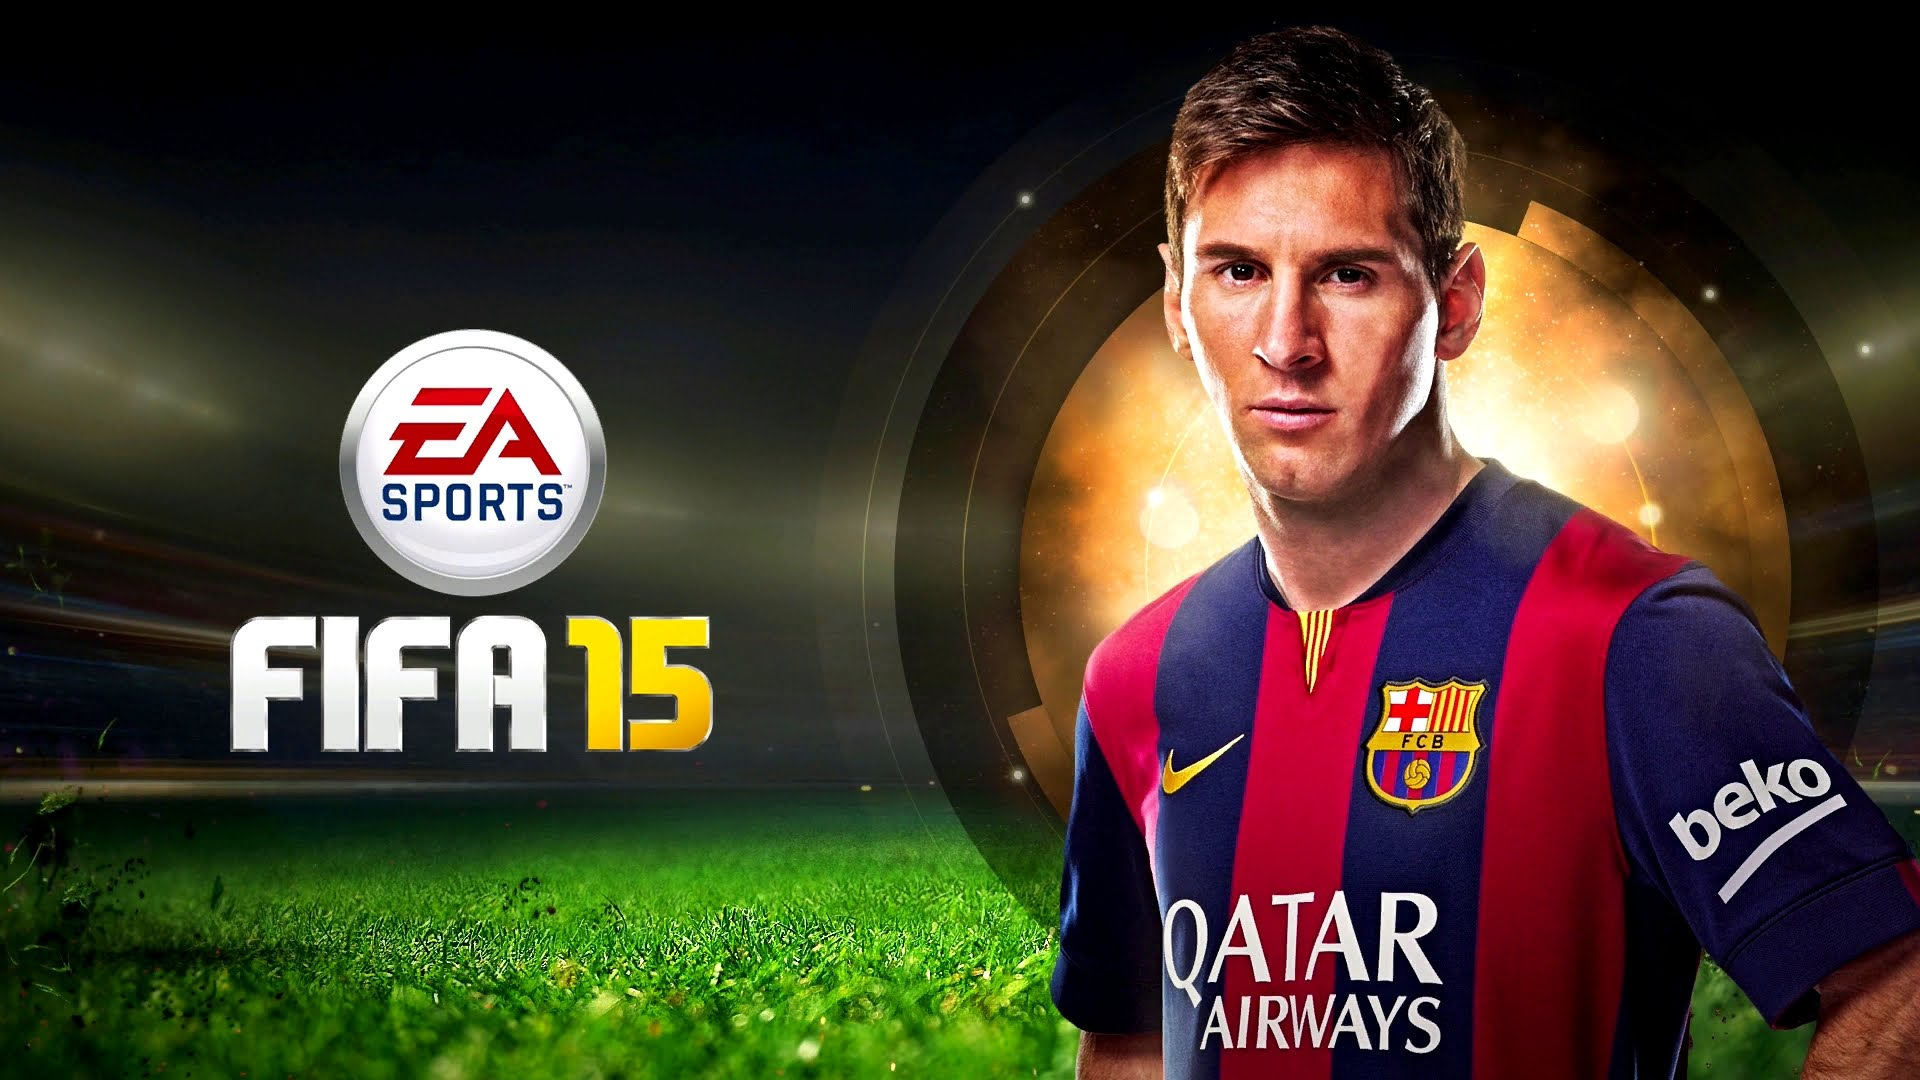 fifa 15 free download for pc full version with crack